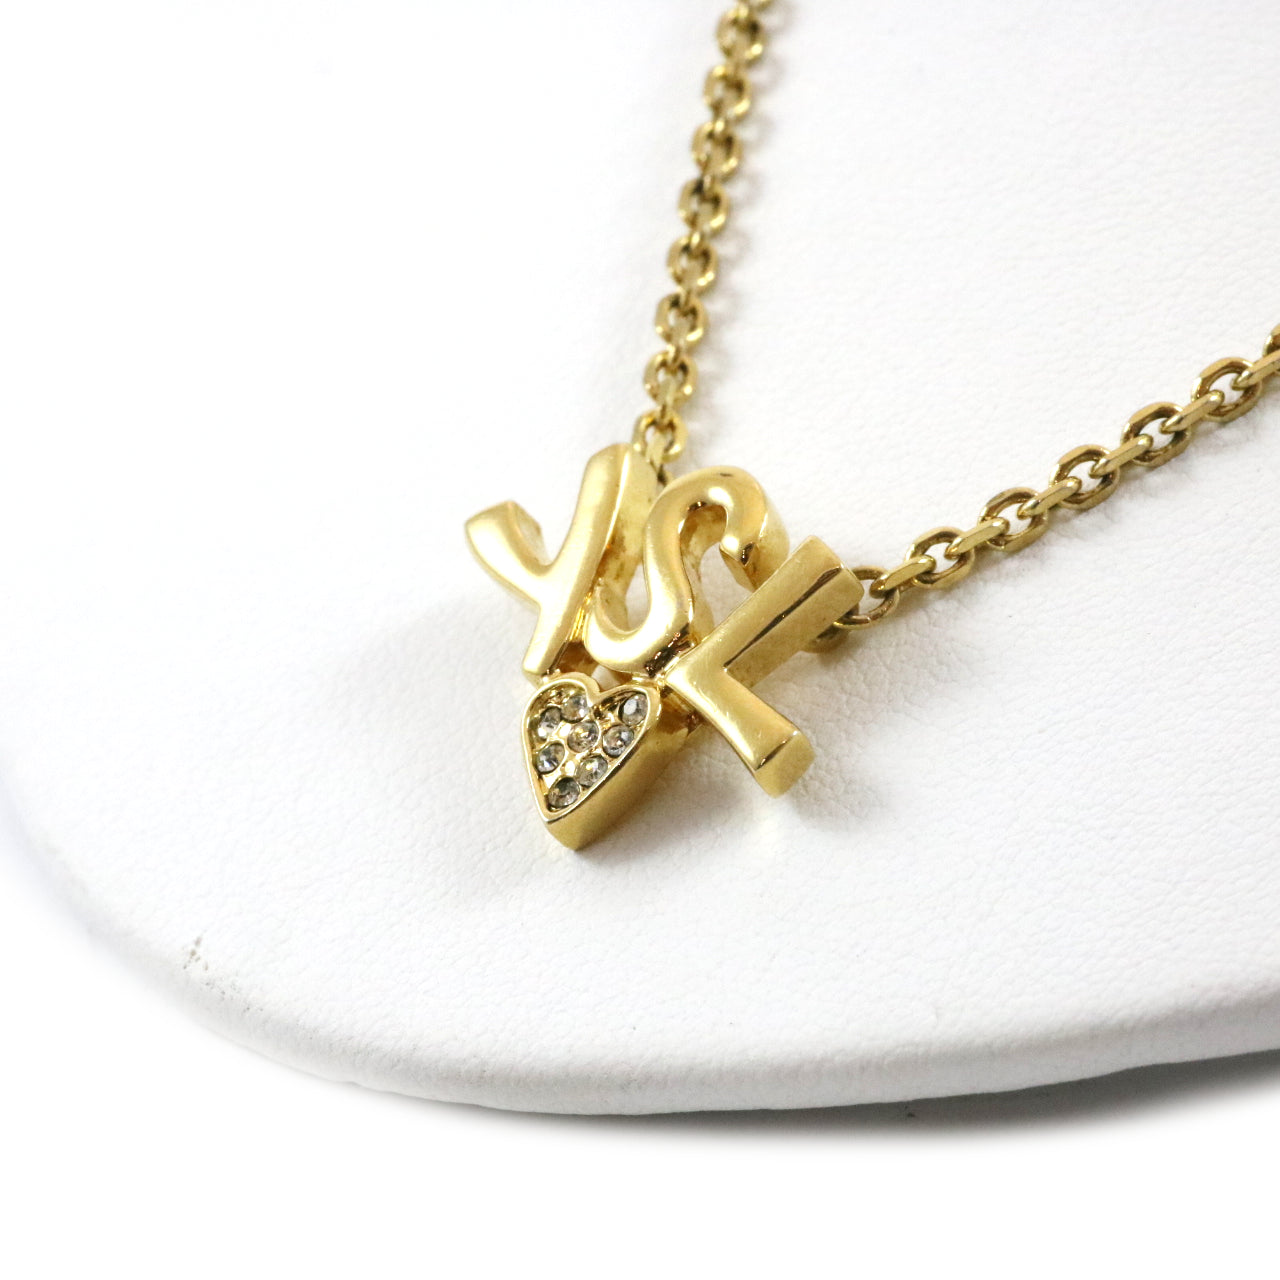 YSL Heart Necklace